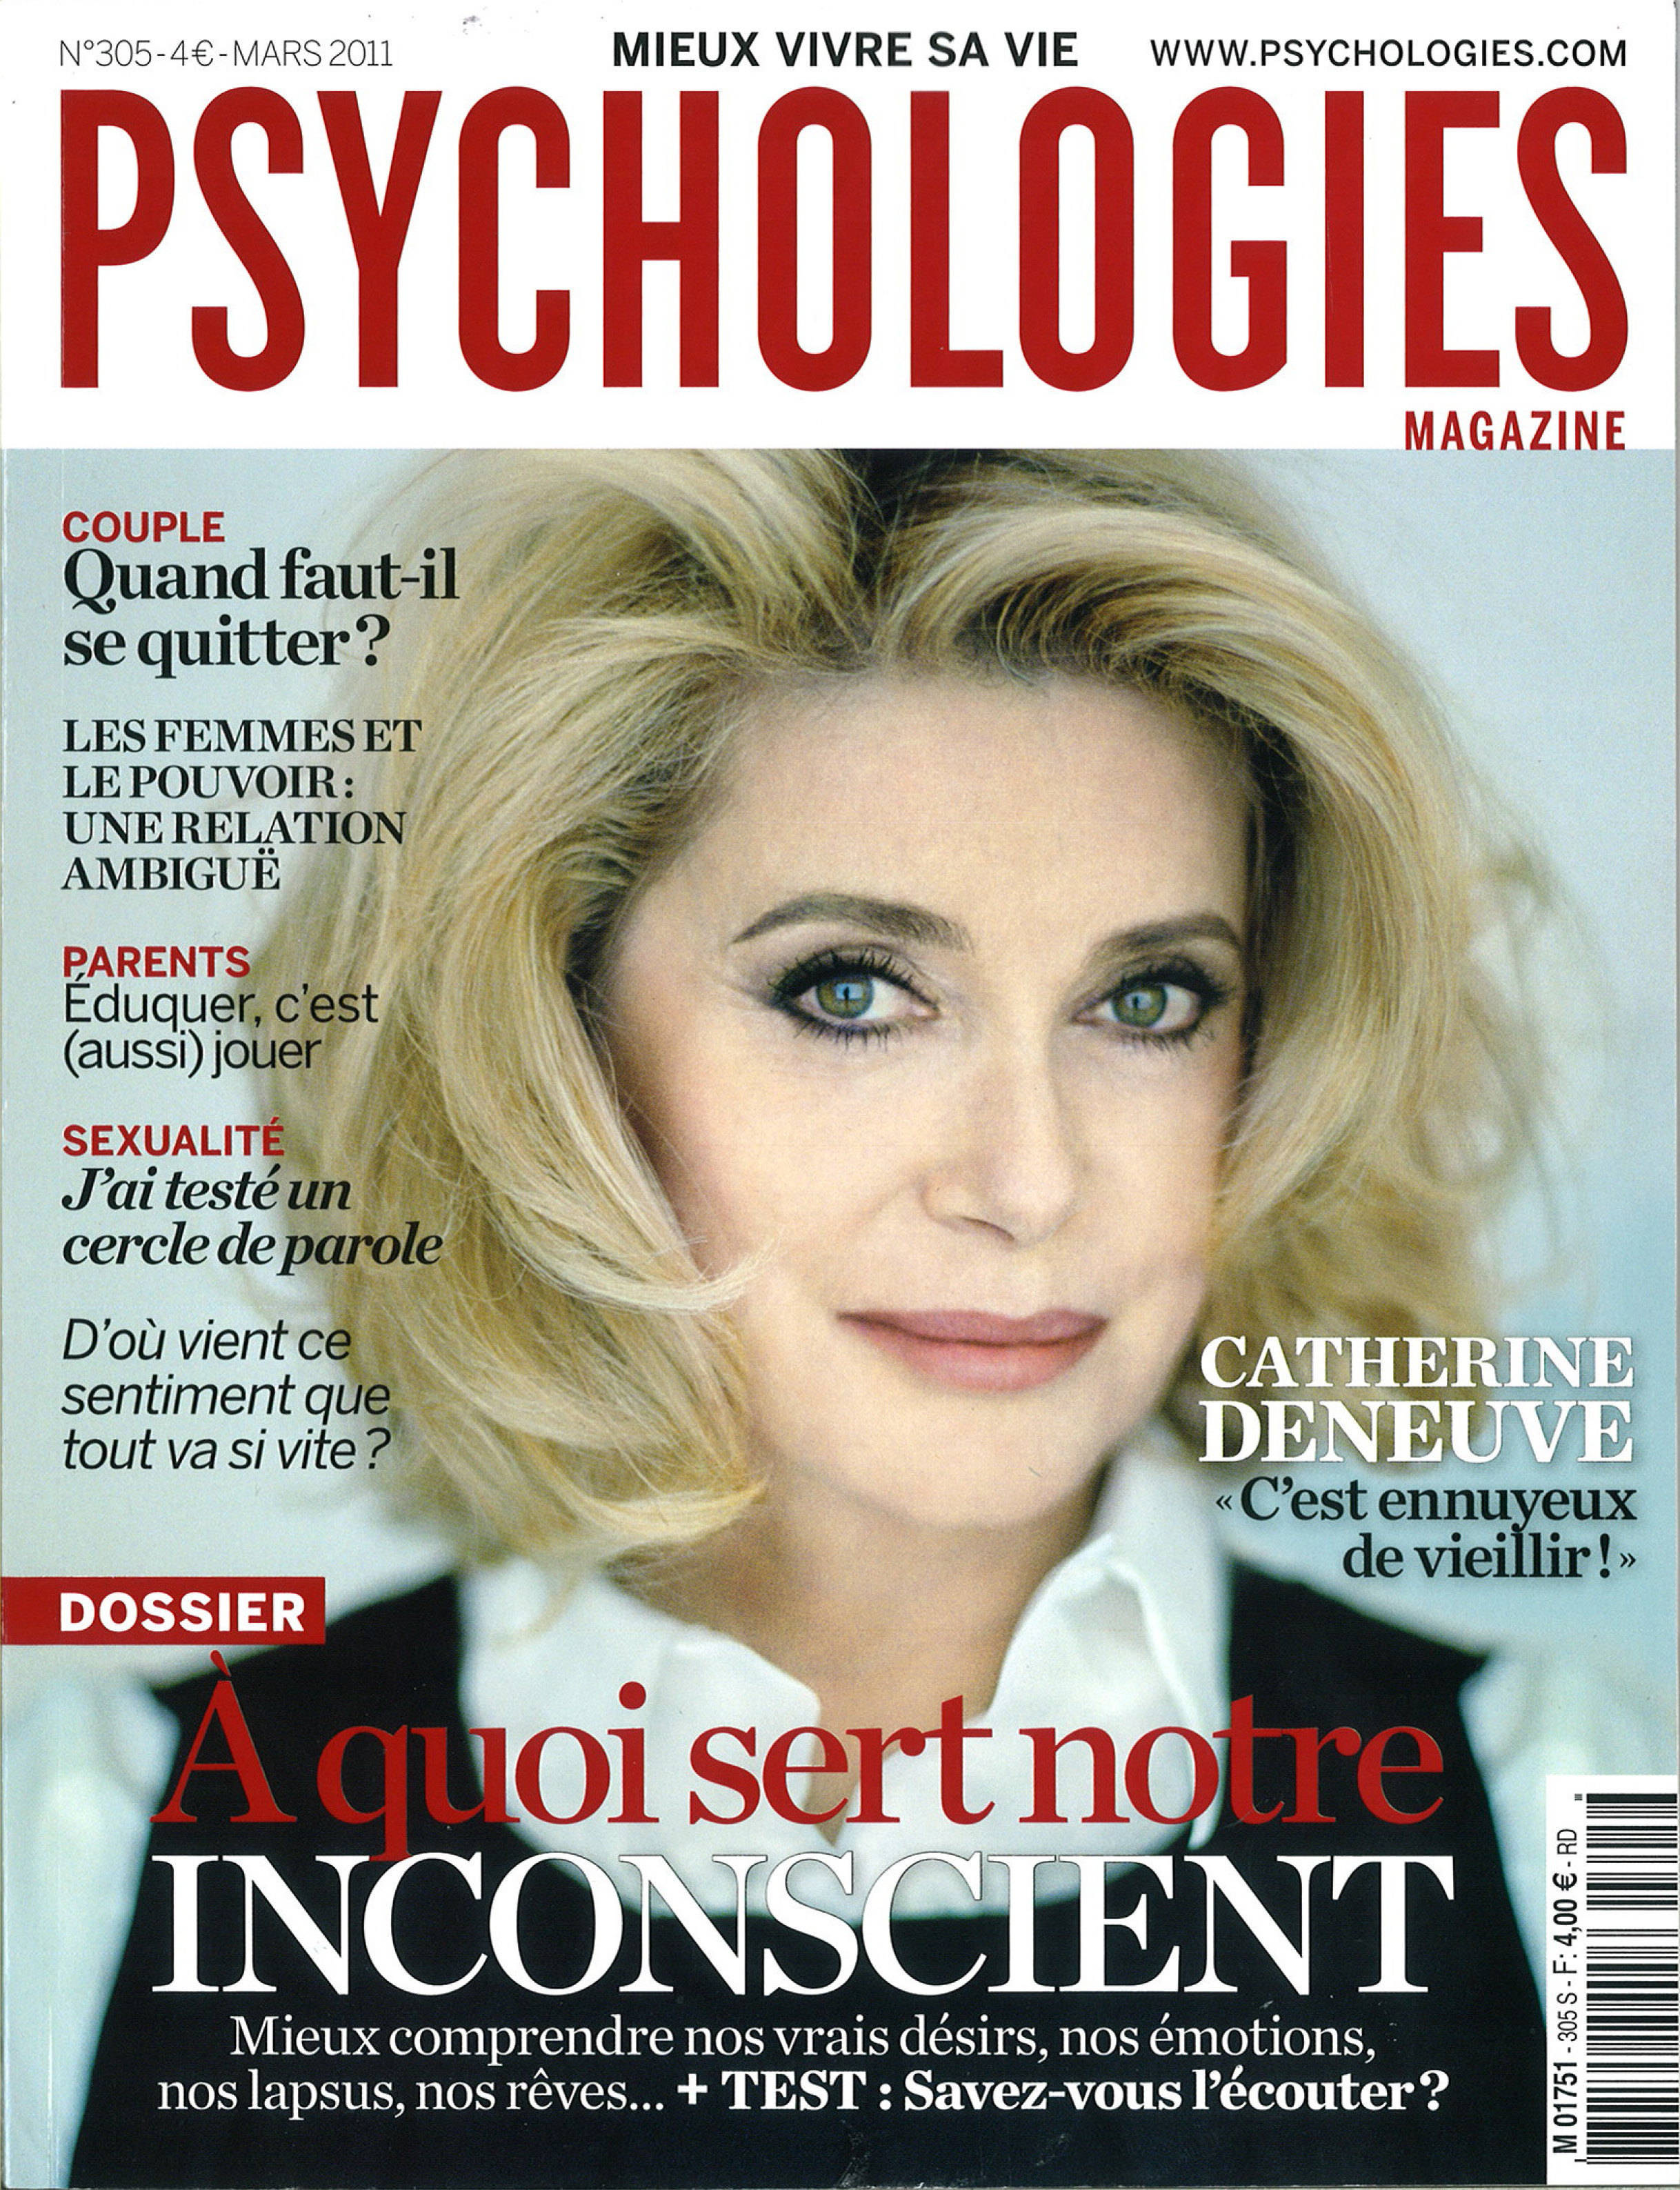 centre tao paris 19 psychologies magazine. Black Bedroom Furniture Sets. Home Design Ideas